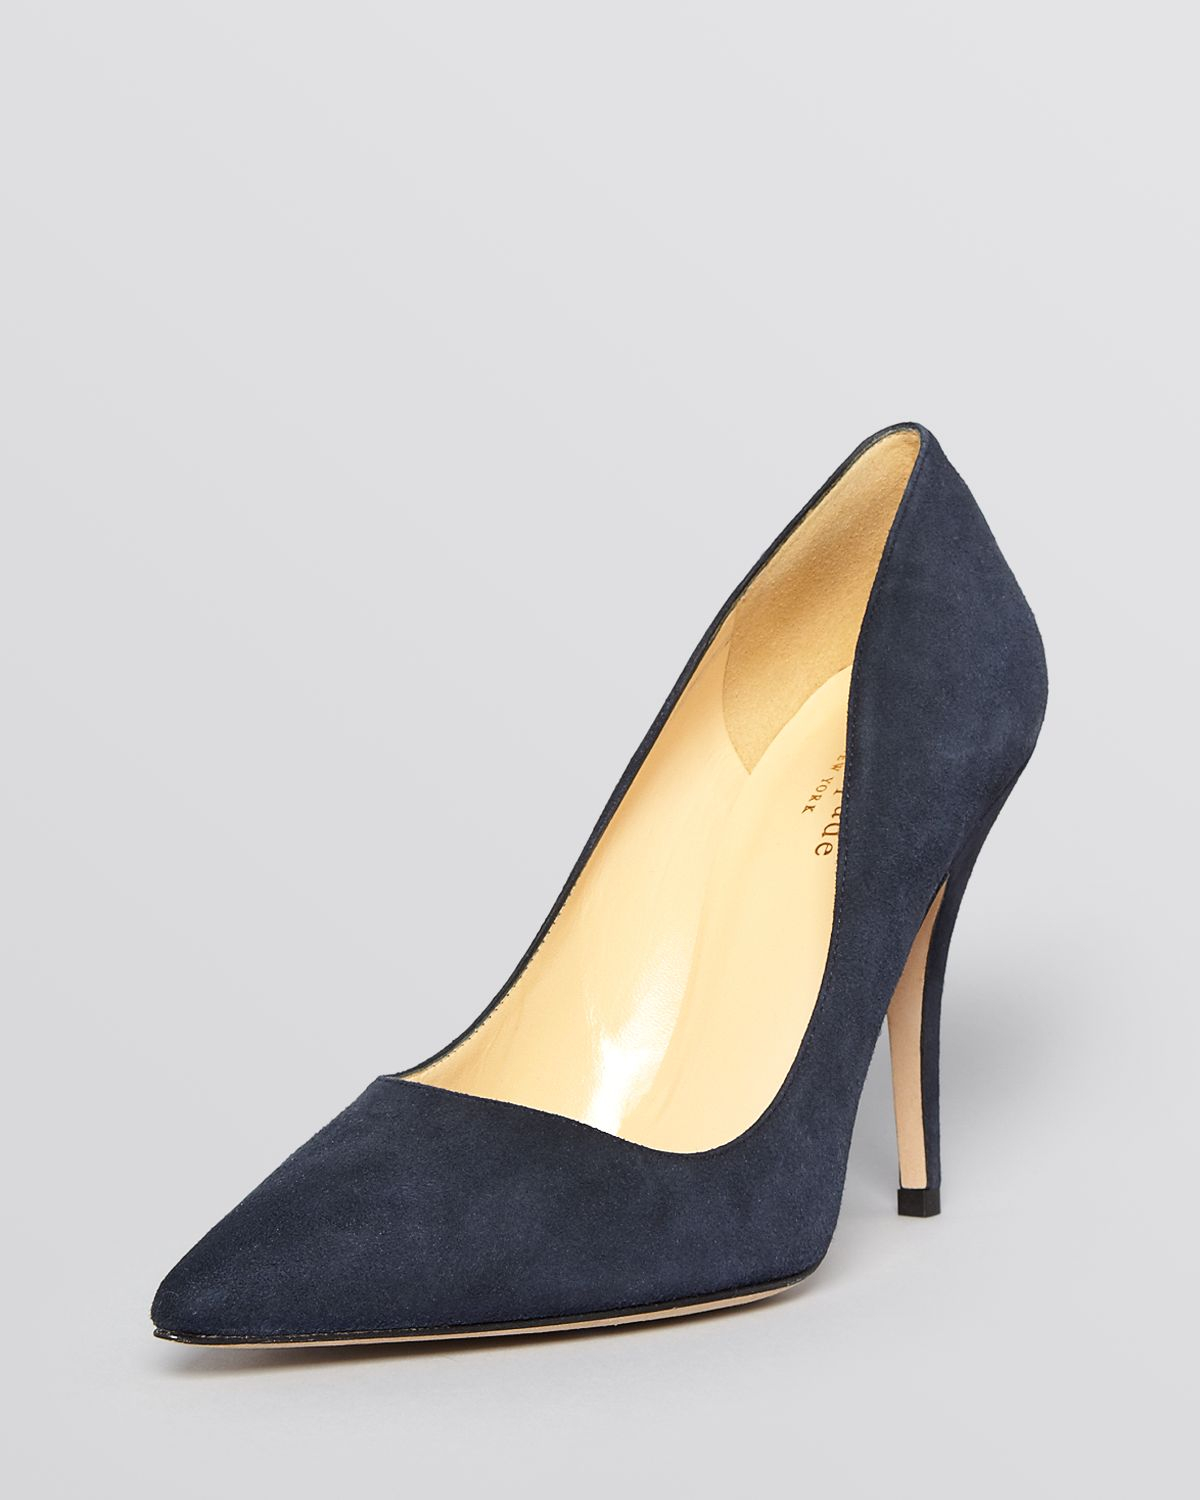 Kate spade new york Pointed Toe Pumps - Licorice High Heel in Blue ...